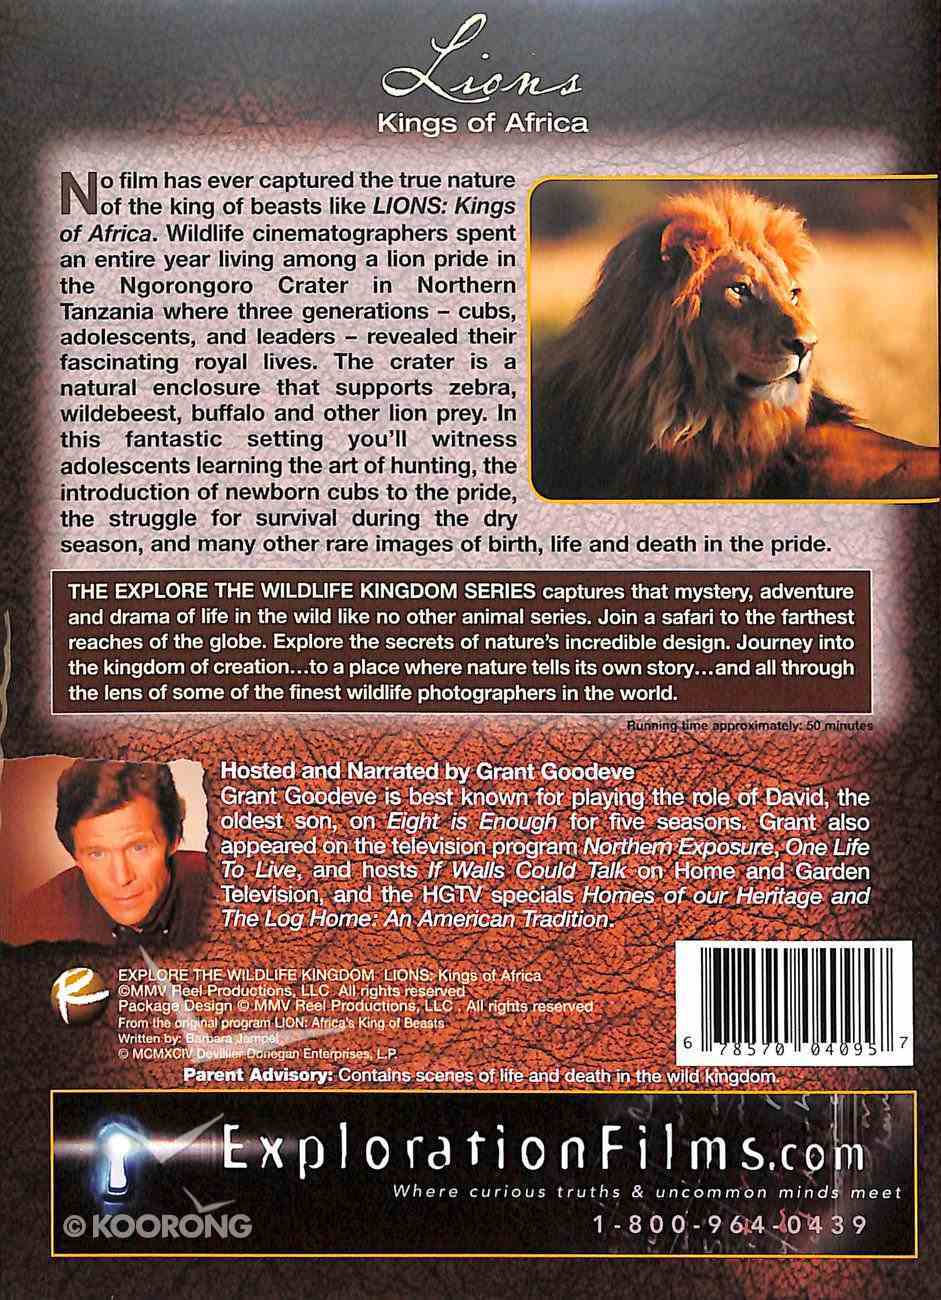 Lions - Kings of Africa (Explore The Wildlife Kingdom Dvd Series) DVD